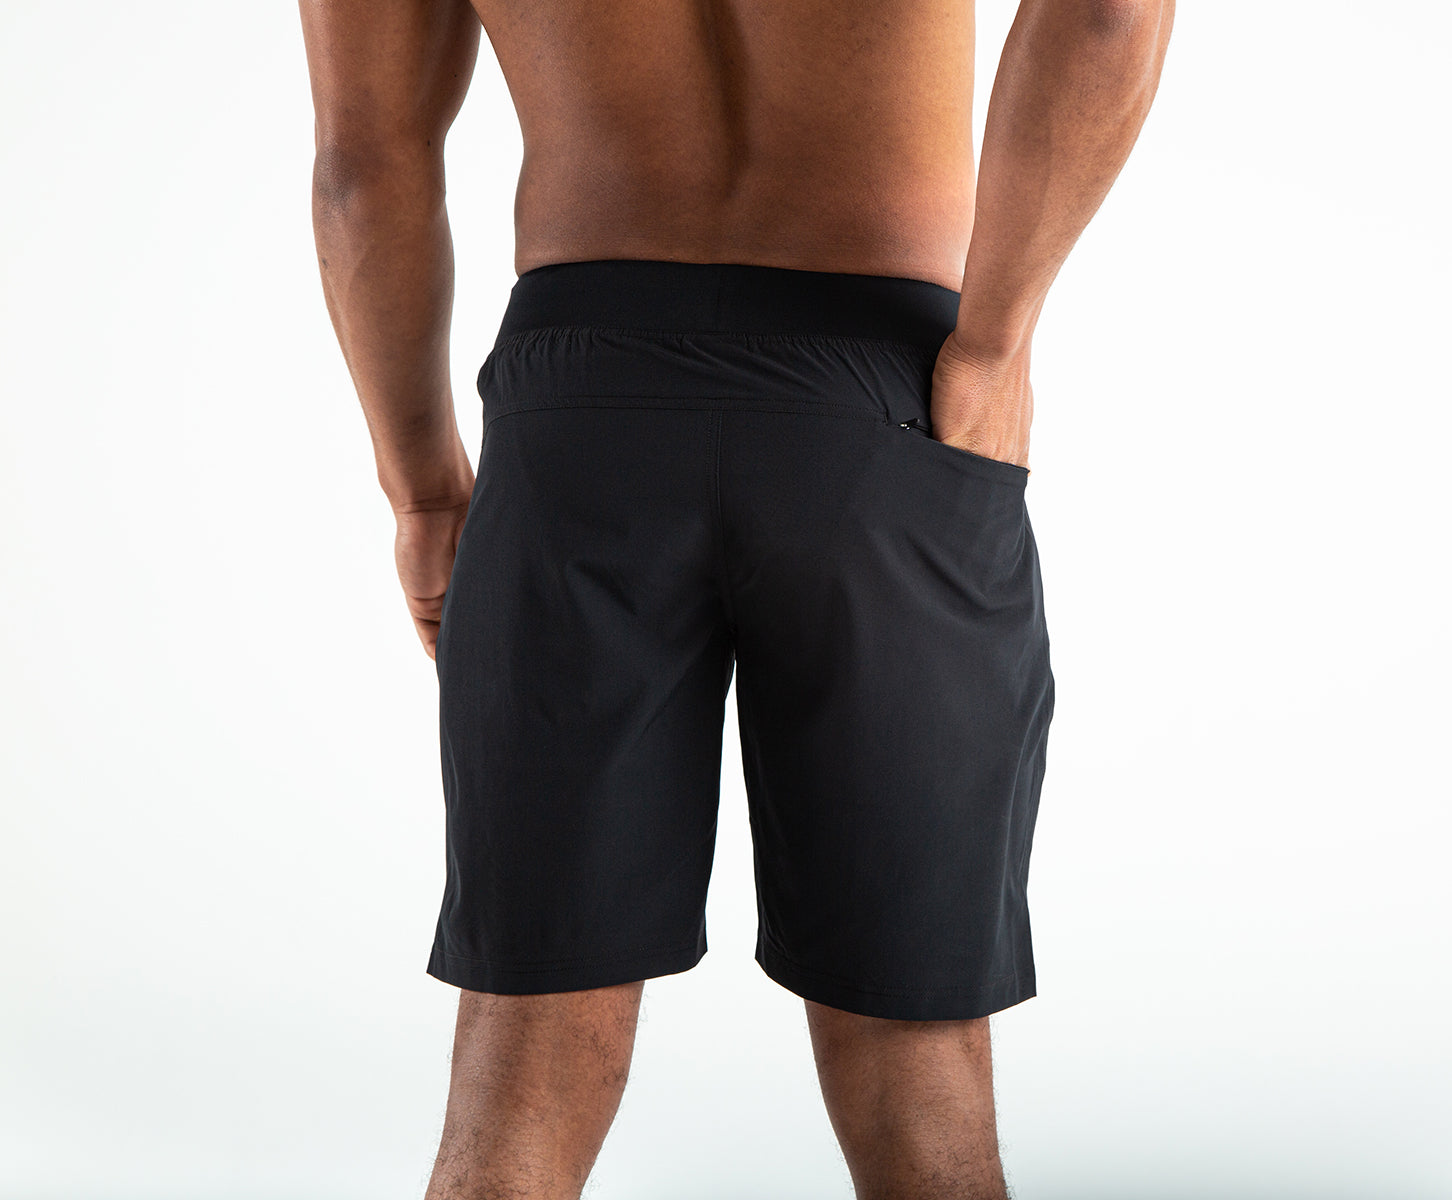 Grenade® Mens Training Shorts - Grenade.com Exclusive